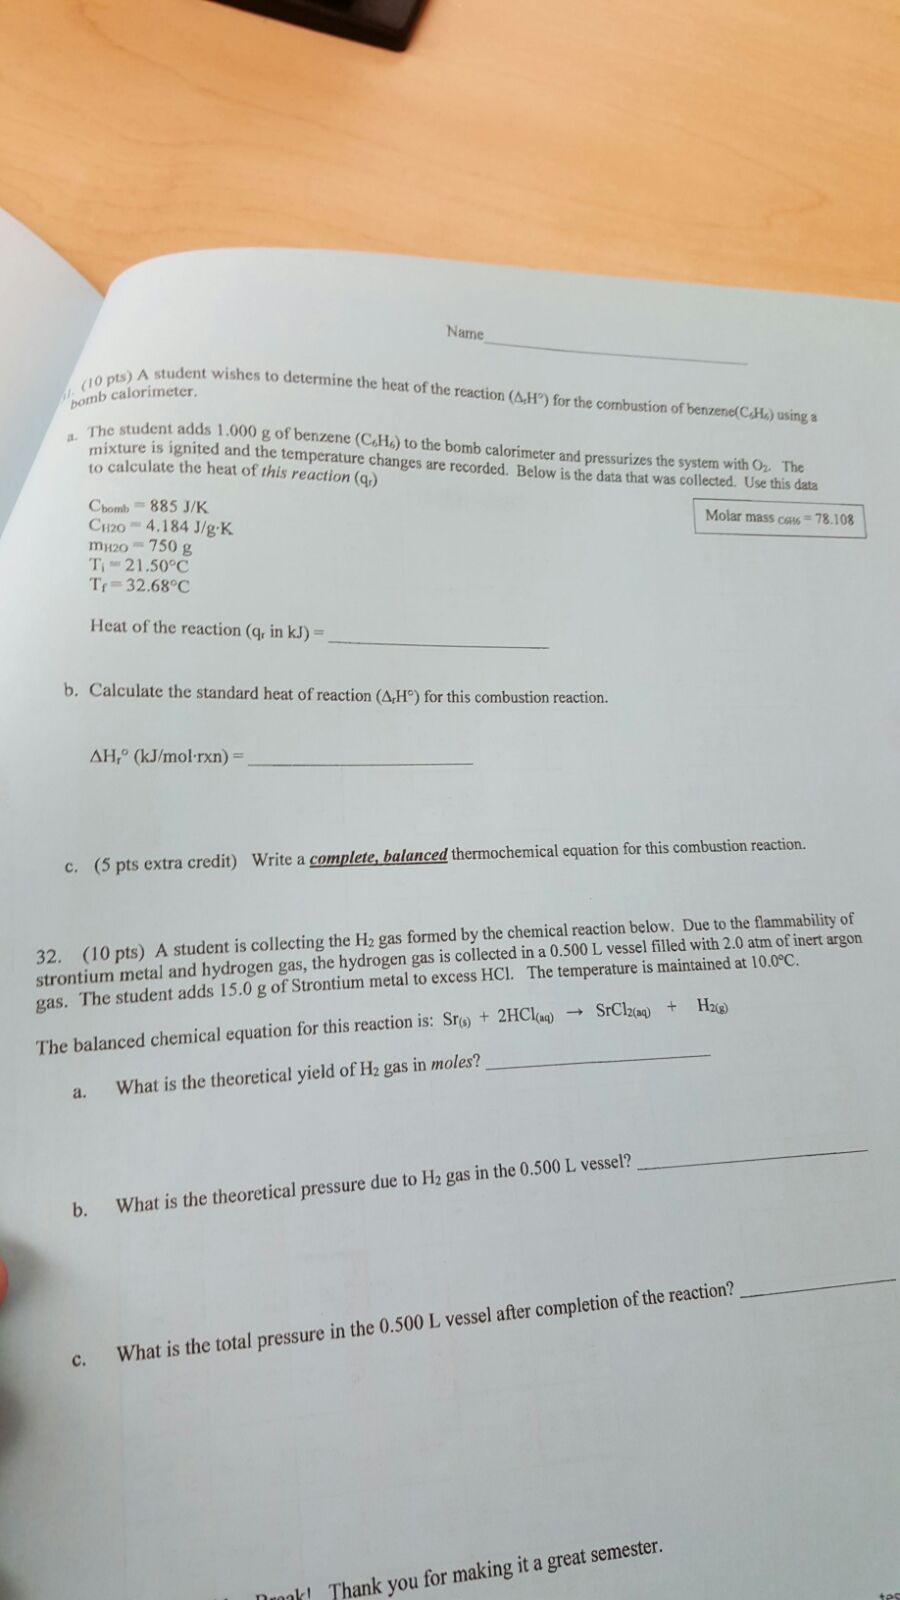 Chemistry archive december 17 2015 chegg write a balanced molecular equation for the following reactions and identify the reaction tye a kohaq reaction type hbraq mgs reaction type net biocorpaavc